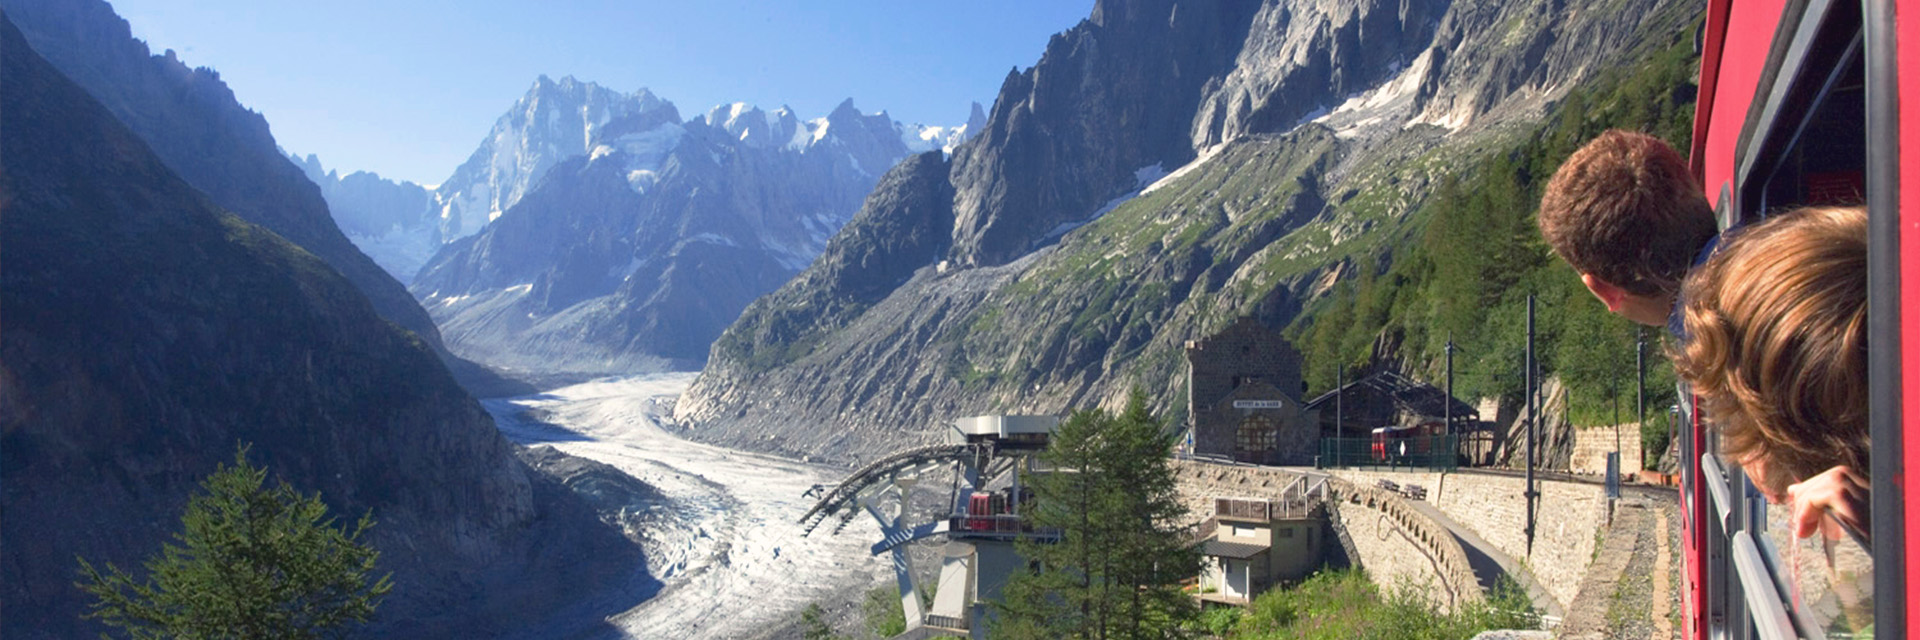 village-club-cap-france-haute-savoie-mont-blanc-le-salvagny-train-chamonix